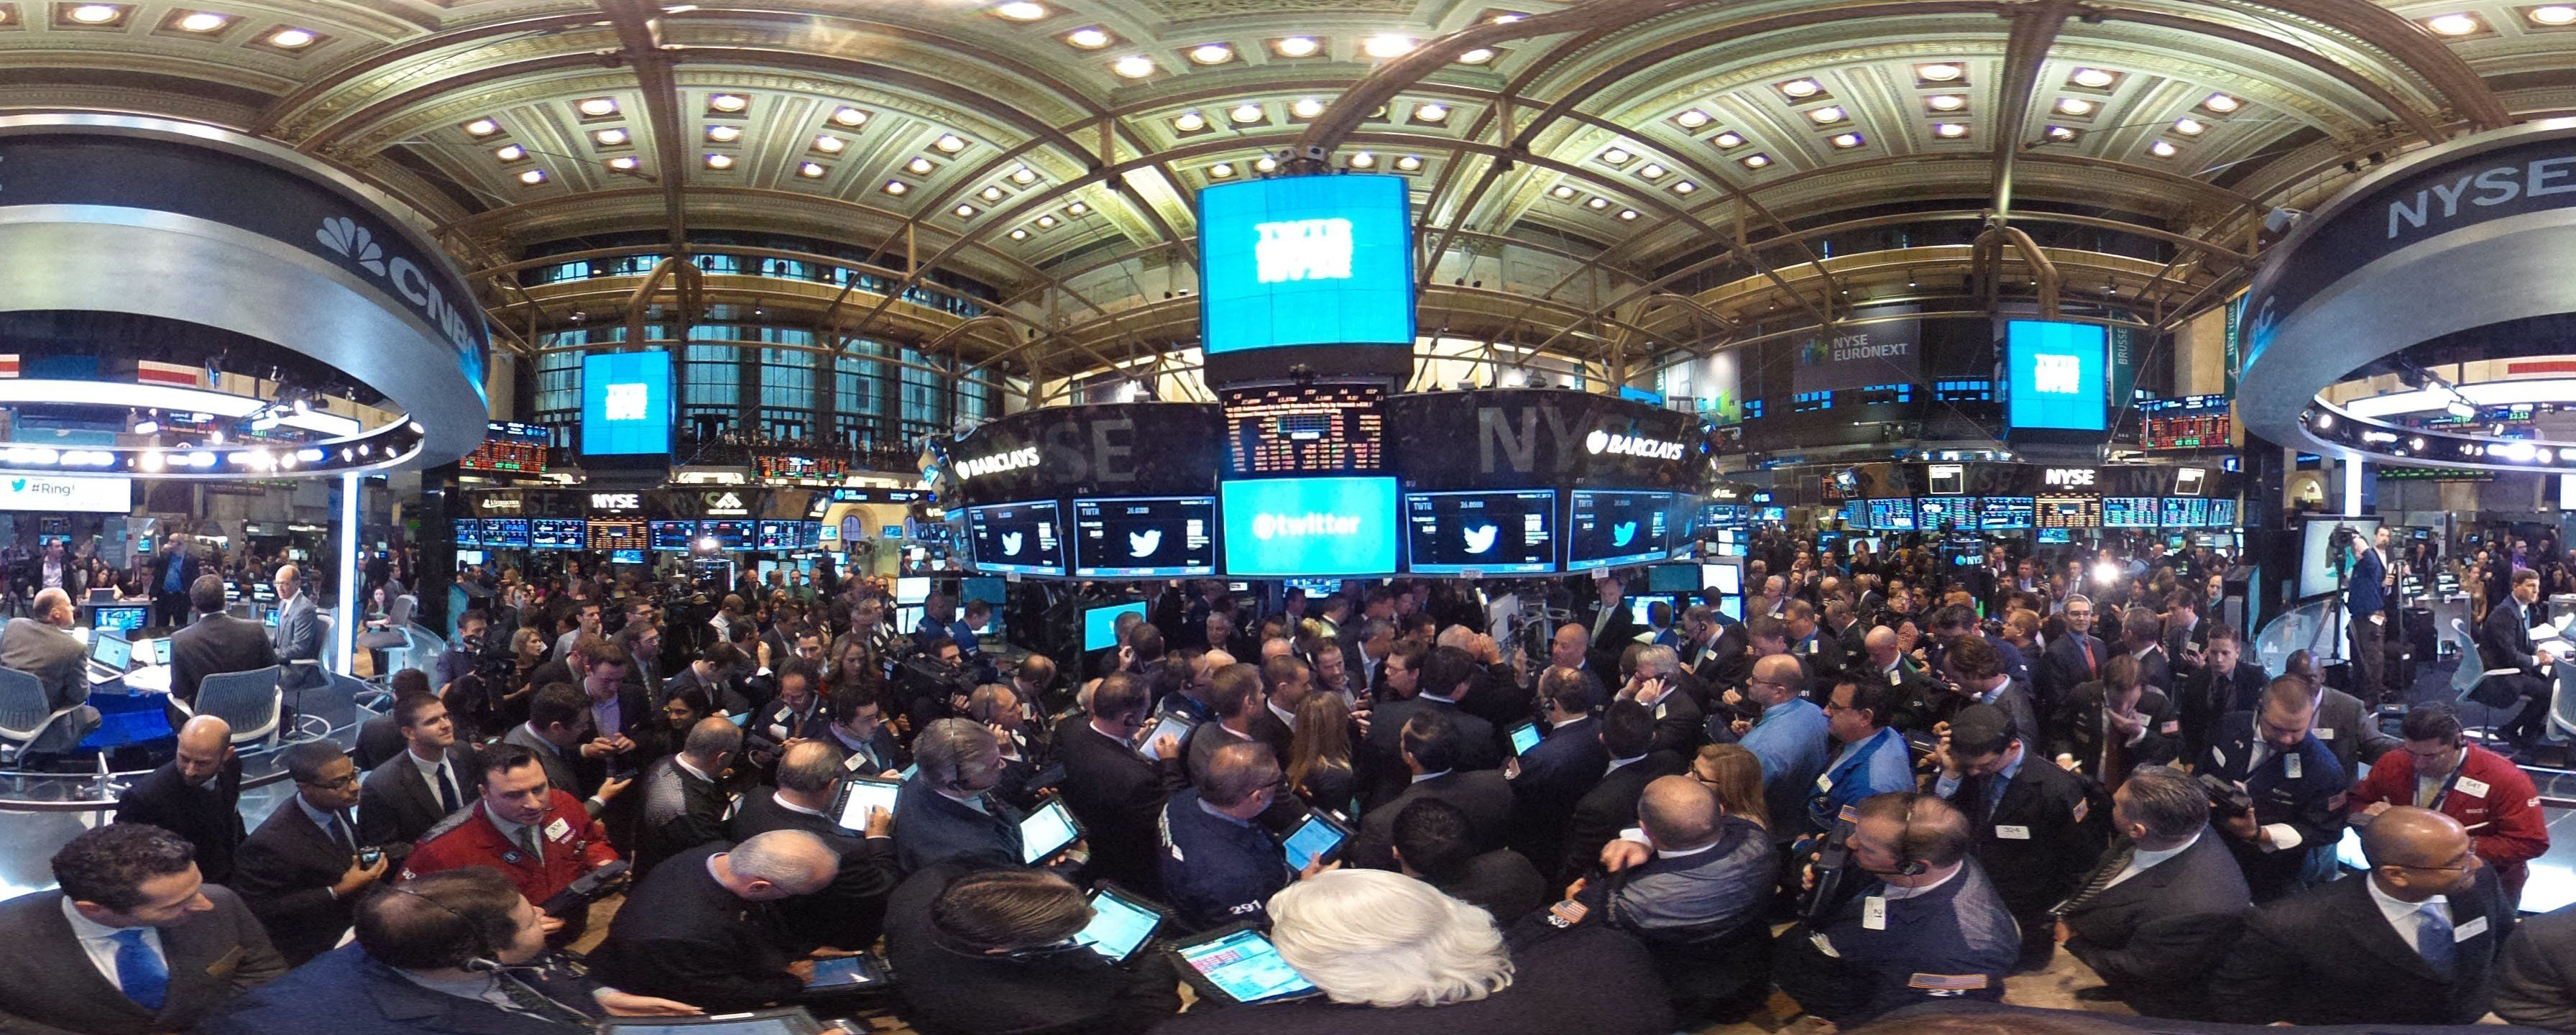 Nyse Trading Floor 2014